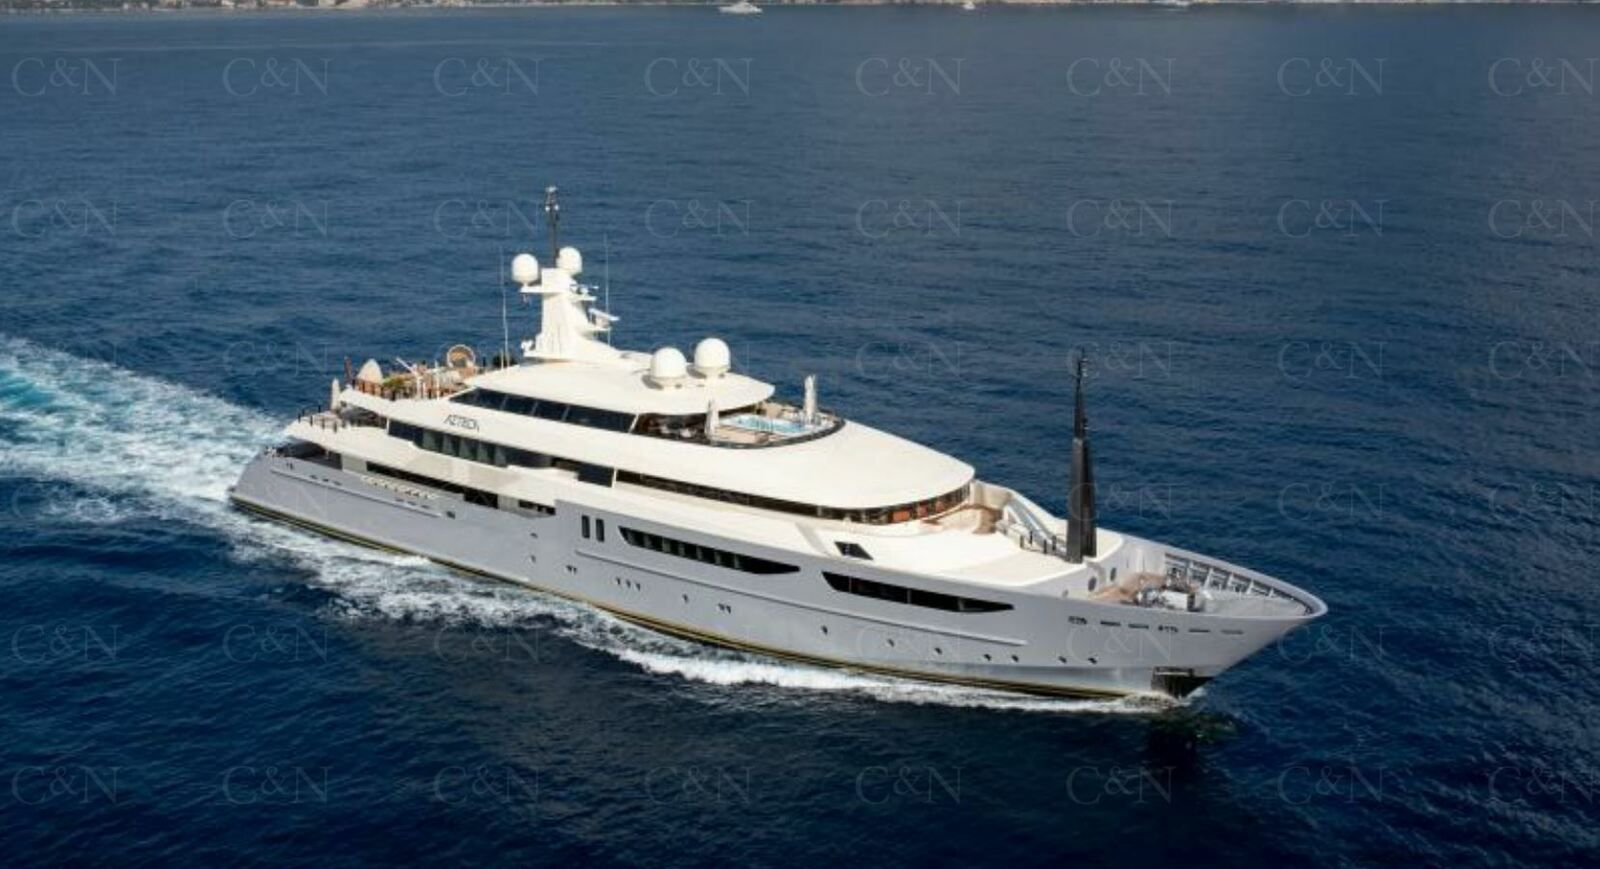 Crypto-currencies - paying for your superyacht in Bitcoins is now possible!